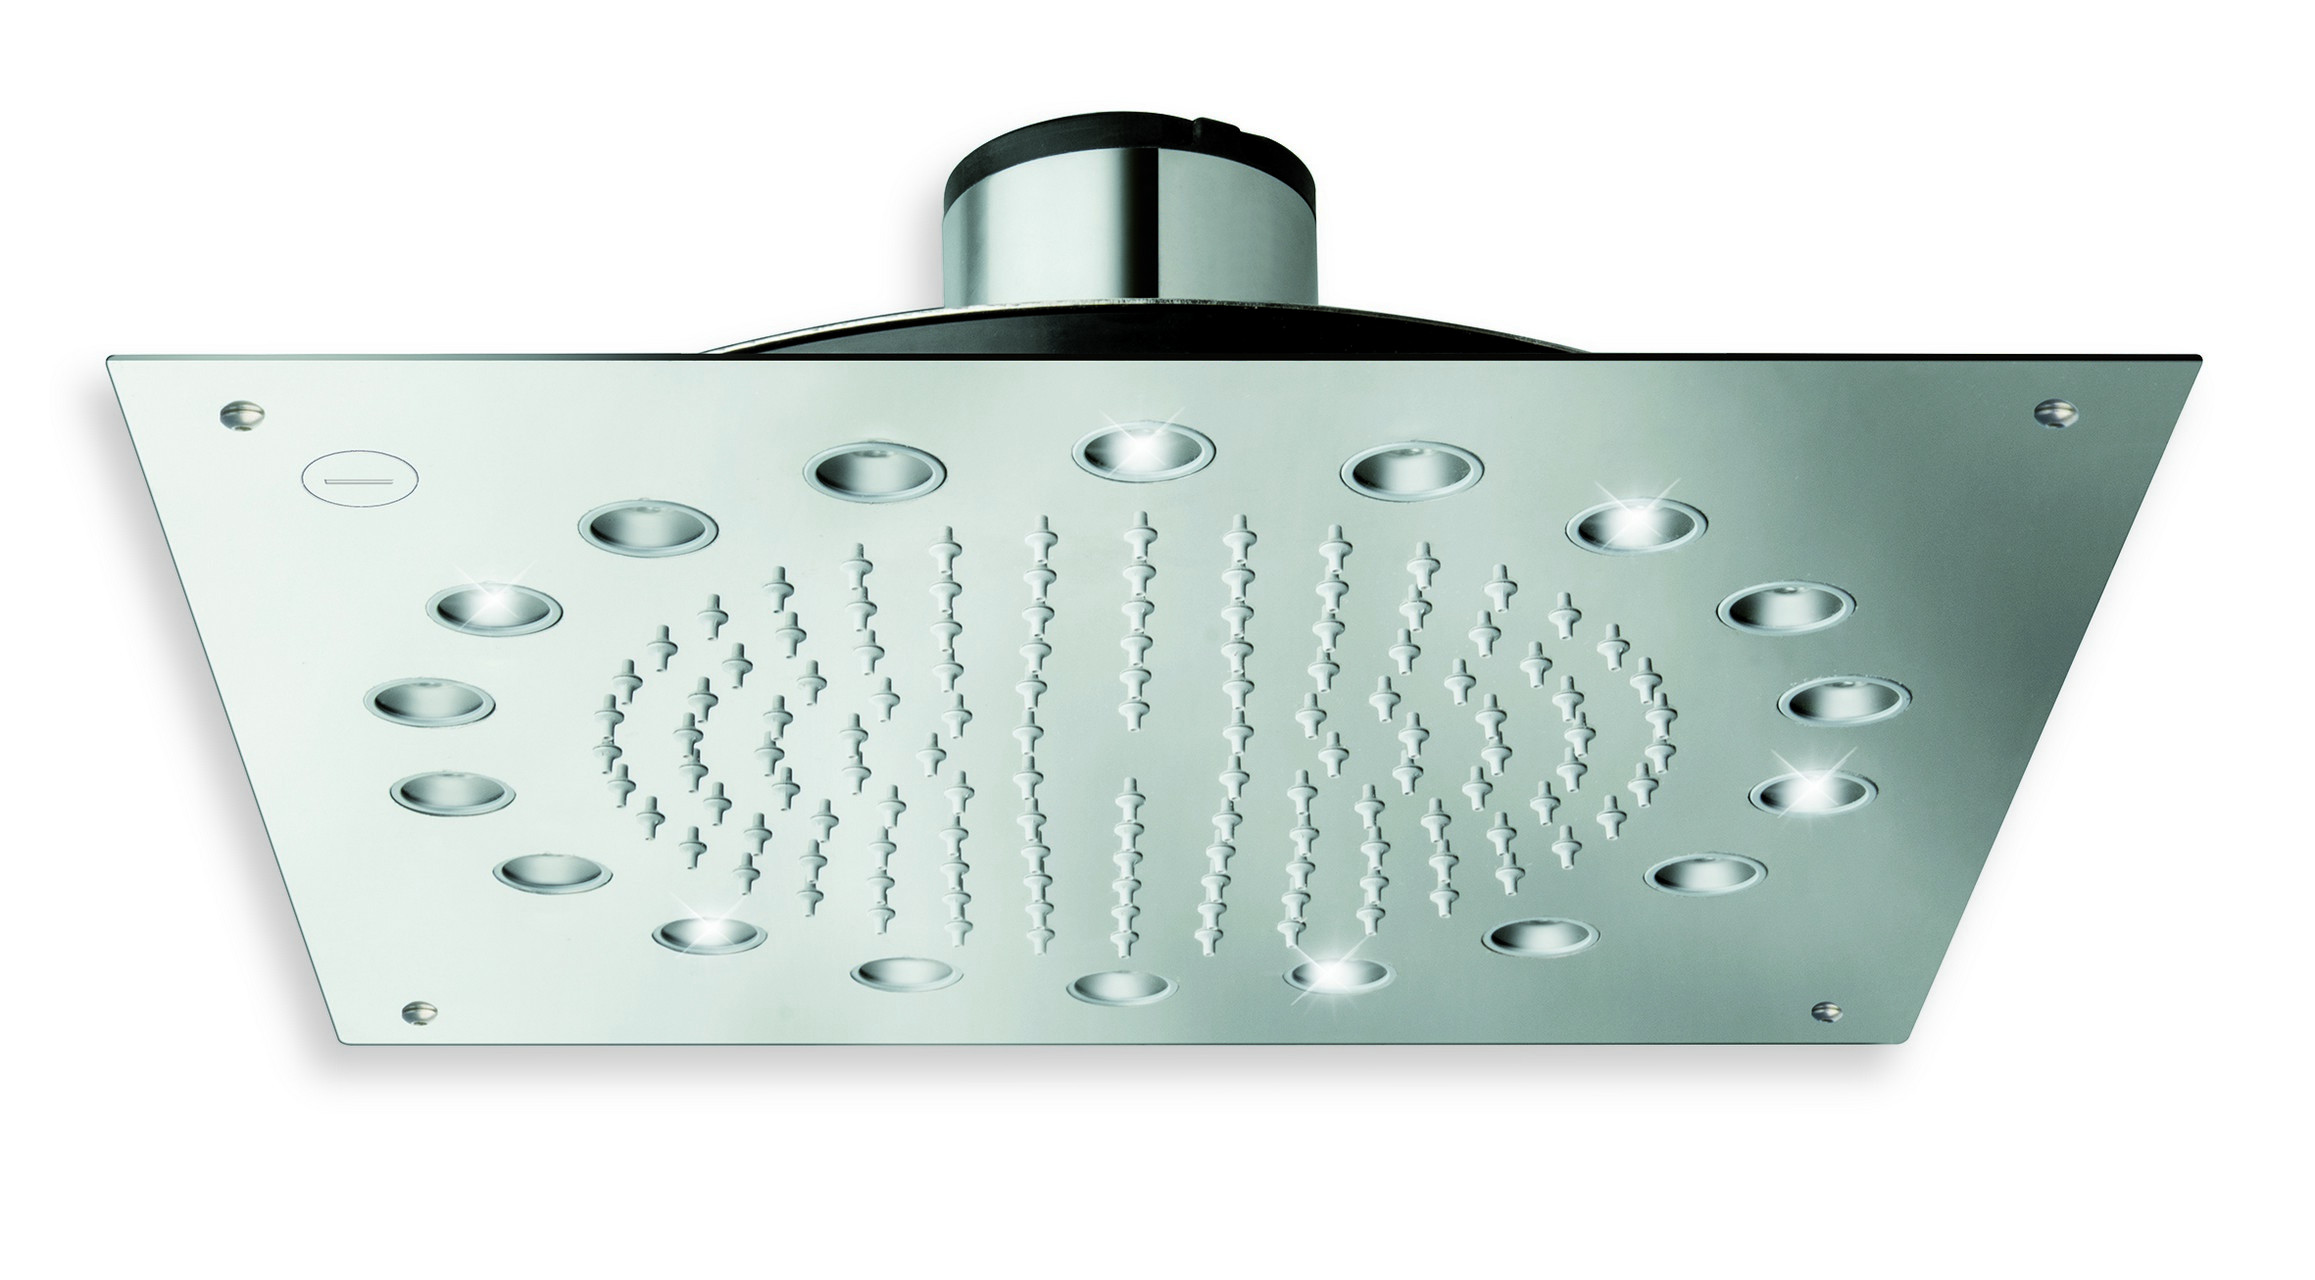 Aquatica DYN-WCSQ-340 Built-In Shower Head In Chrome With LED Lights